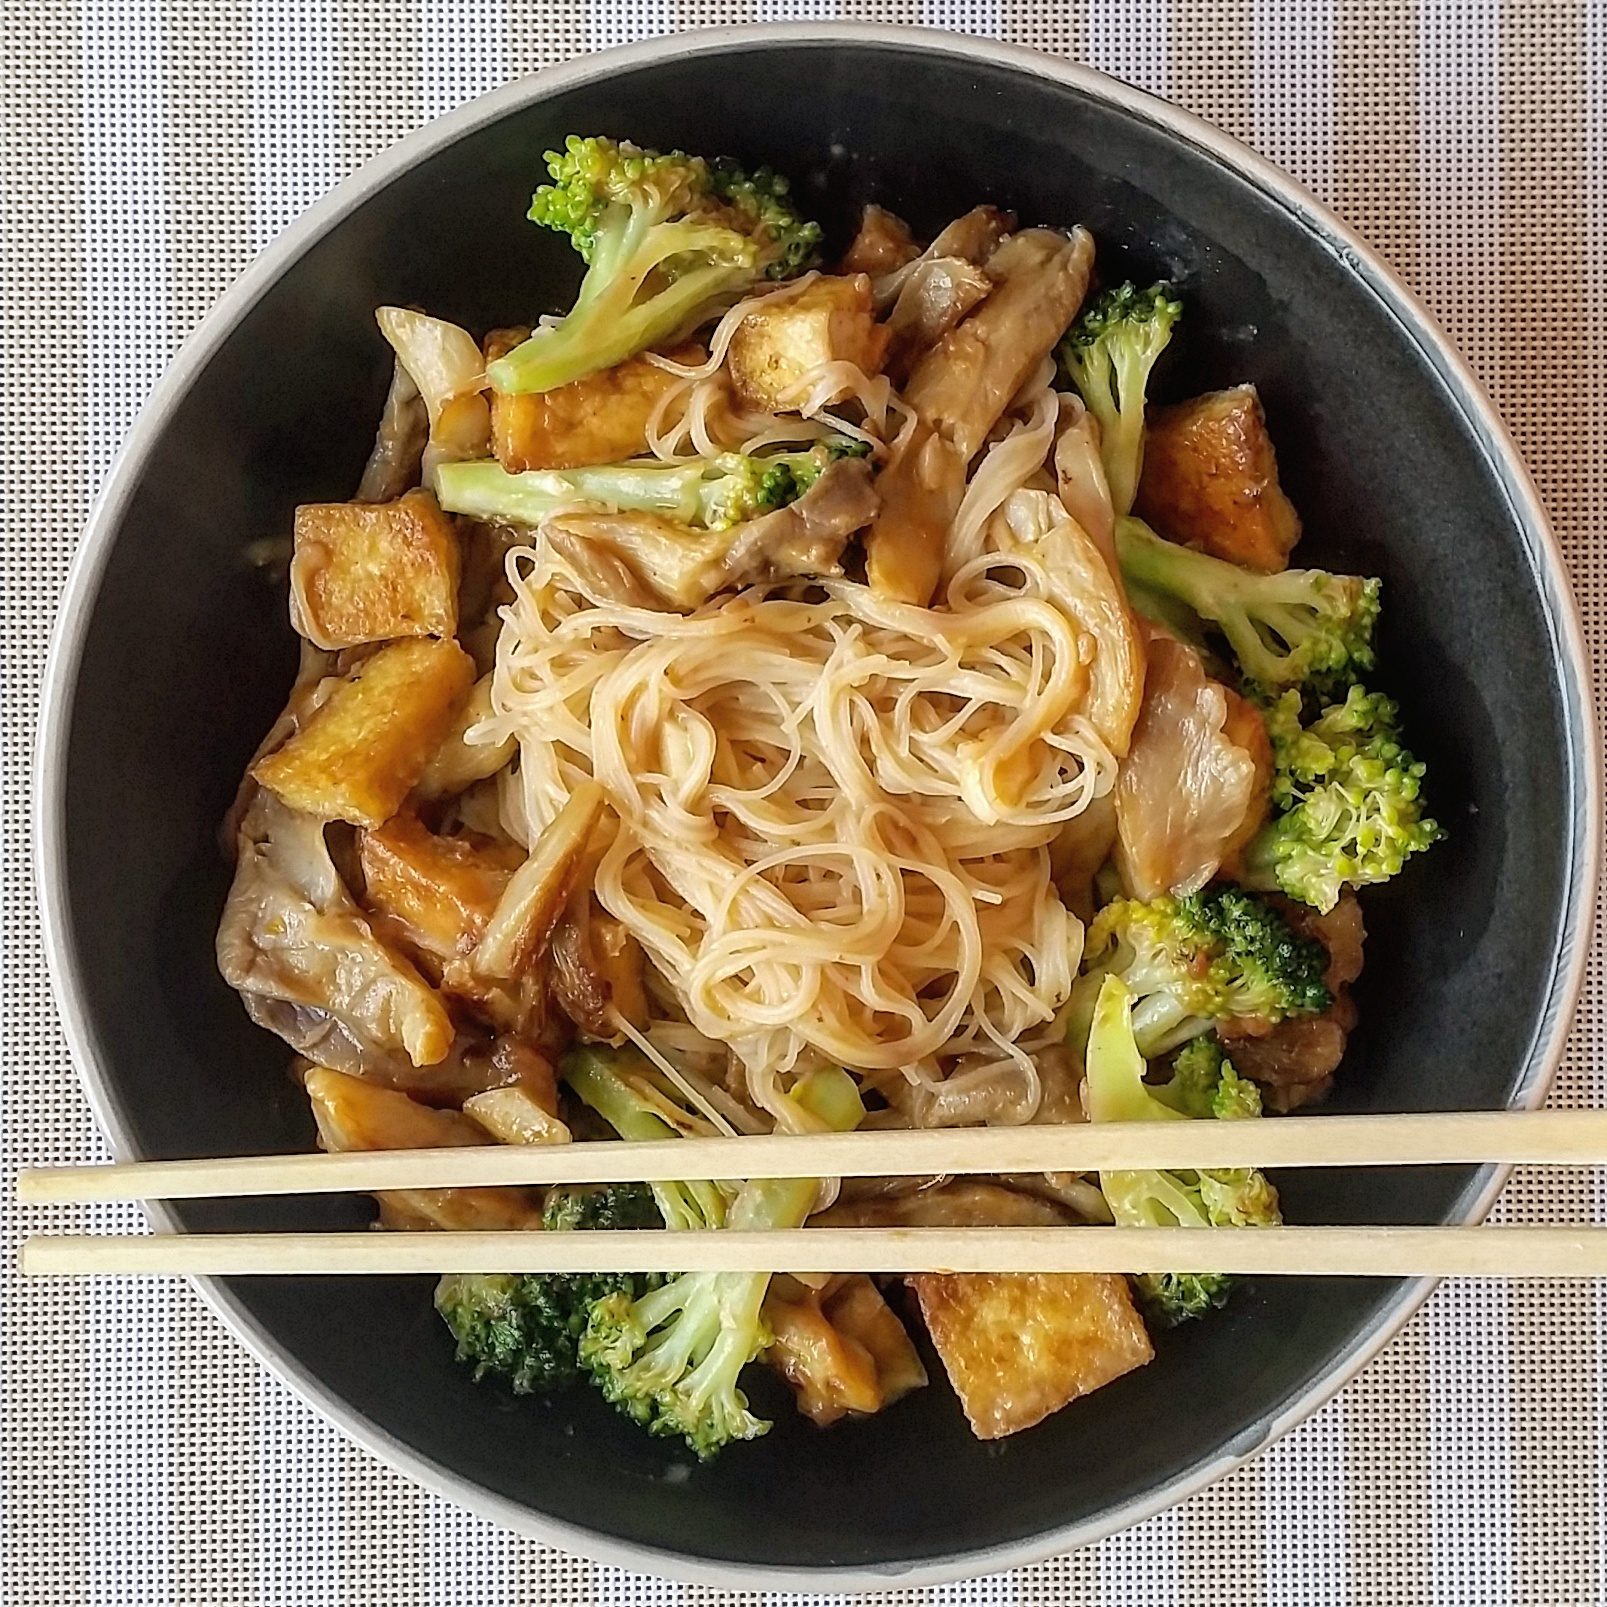 Satay rice noodles with rice , tofu and oyster mushrooms